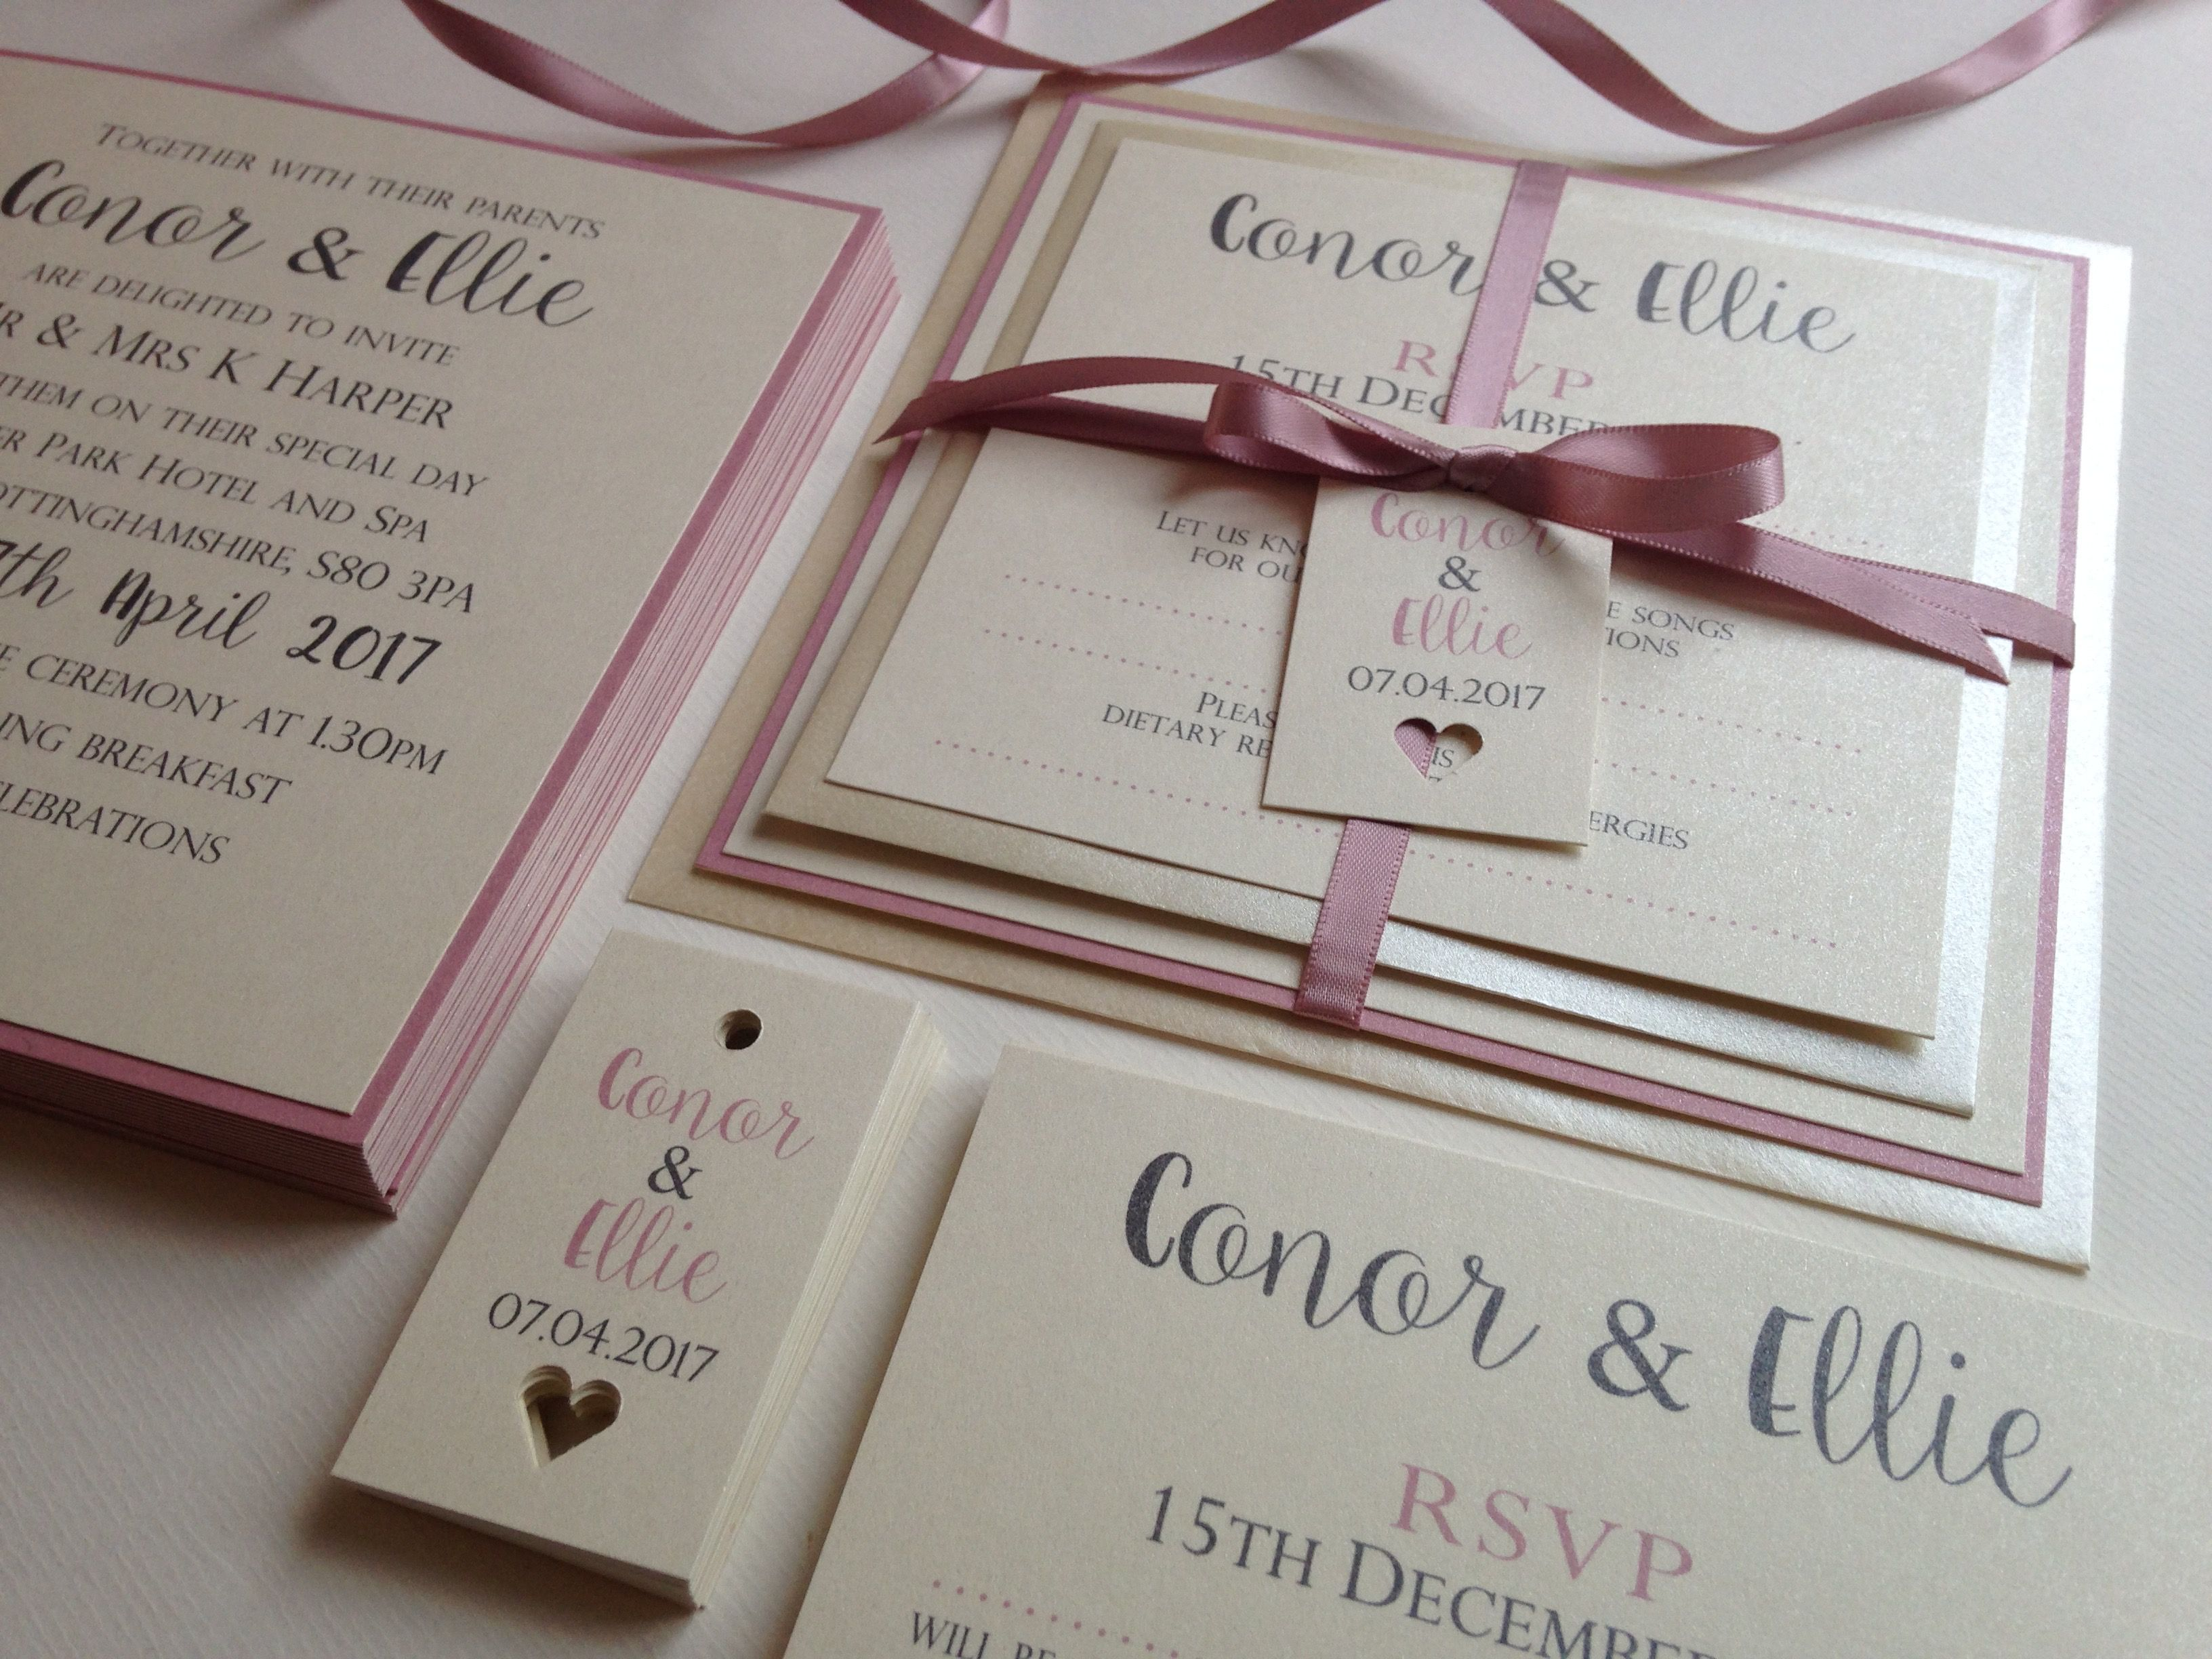 Cute wedding invitation with reply card all tied up with cameo